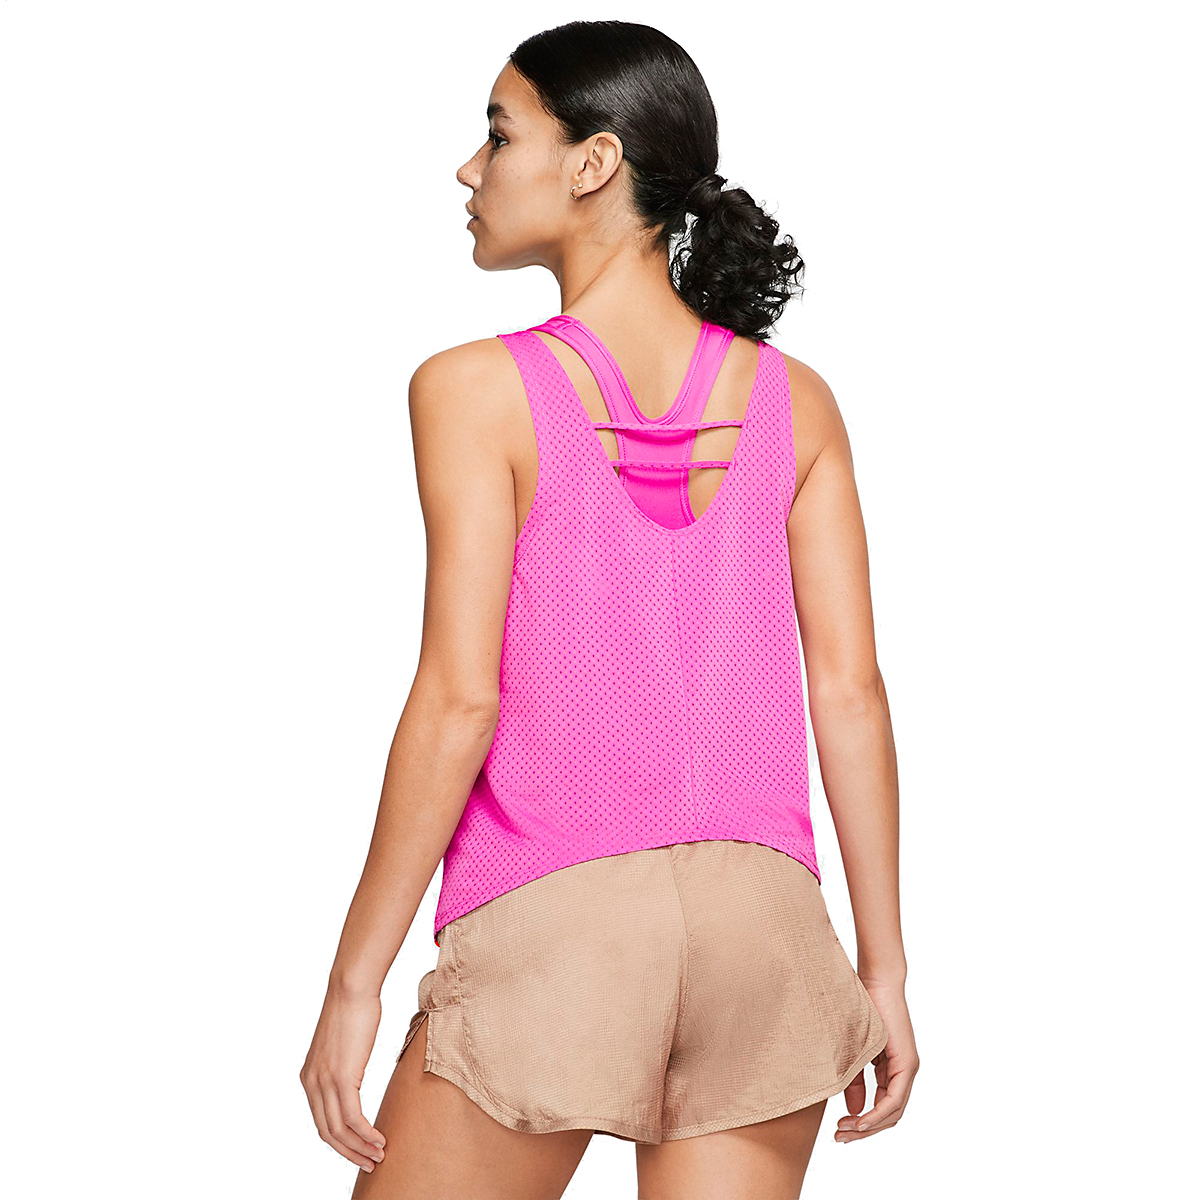 Women's Nike Breathe Running Tank - Color: Fire Pink - Size: XS, Fire Pink, large, image 2